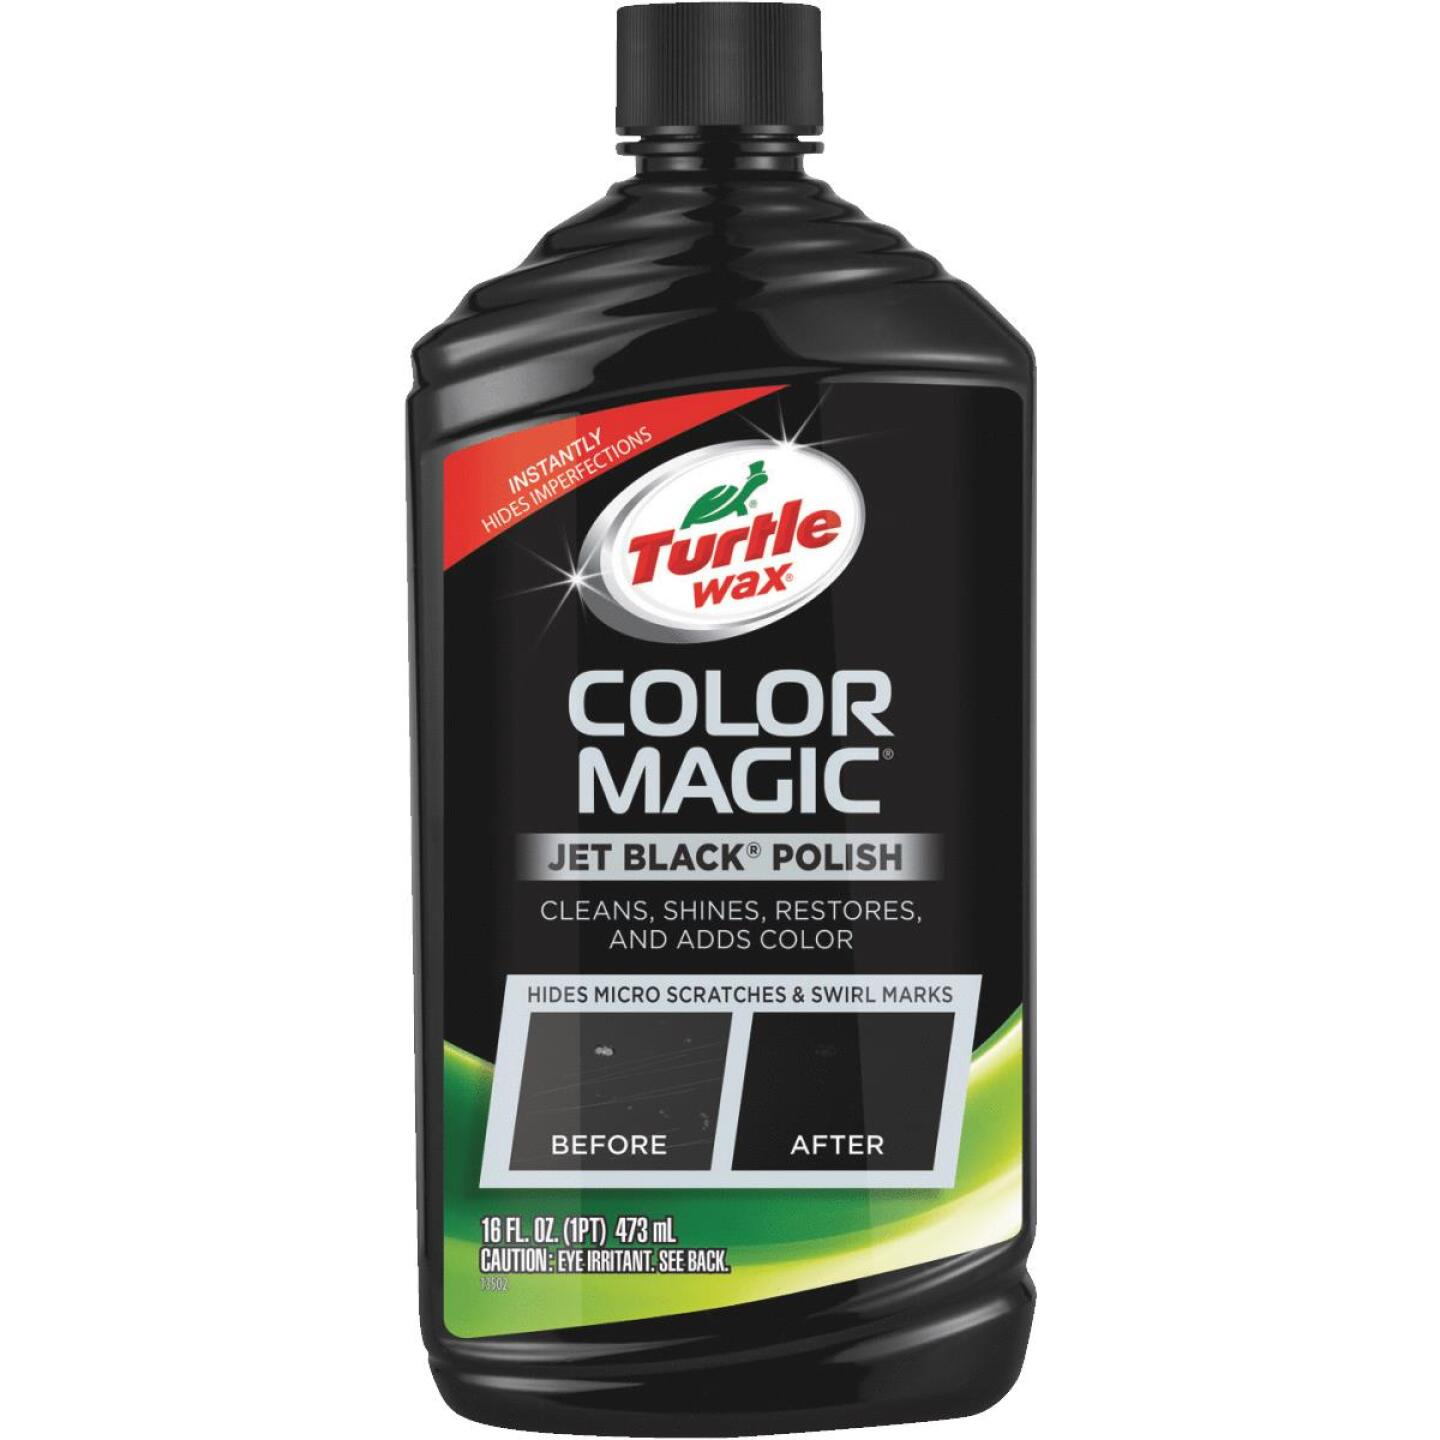 Turtle Wax Color Magic 16 oz Liquid Car Wax Image 1